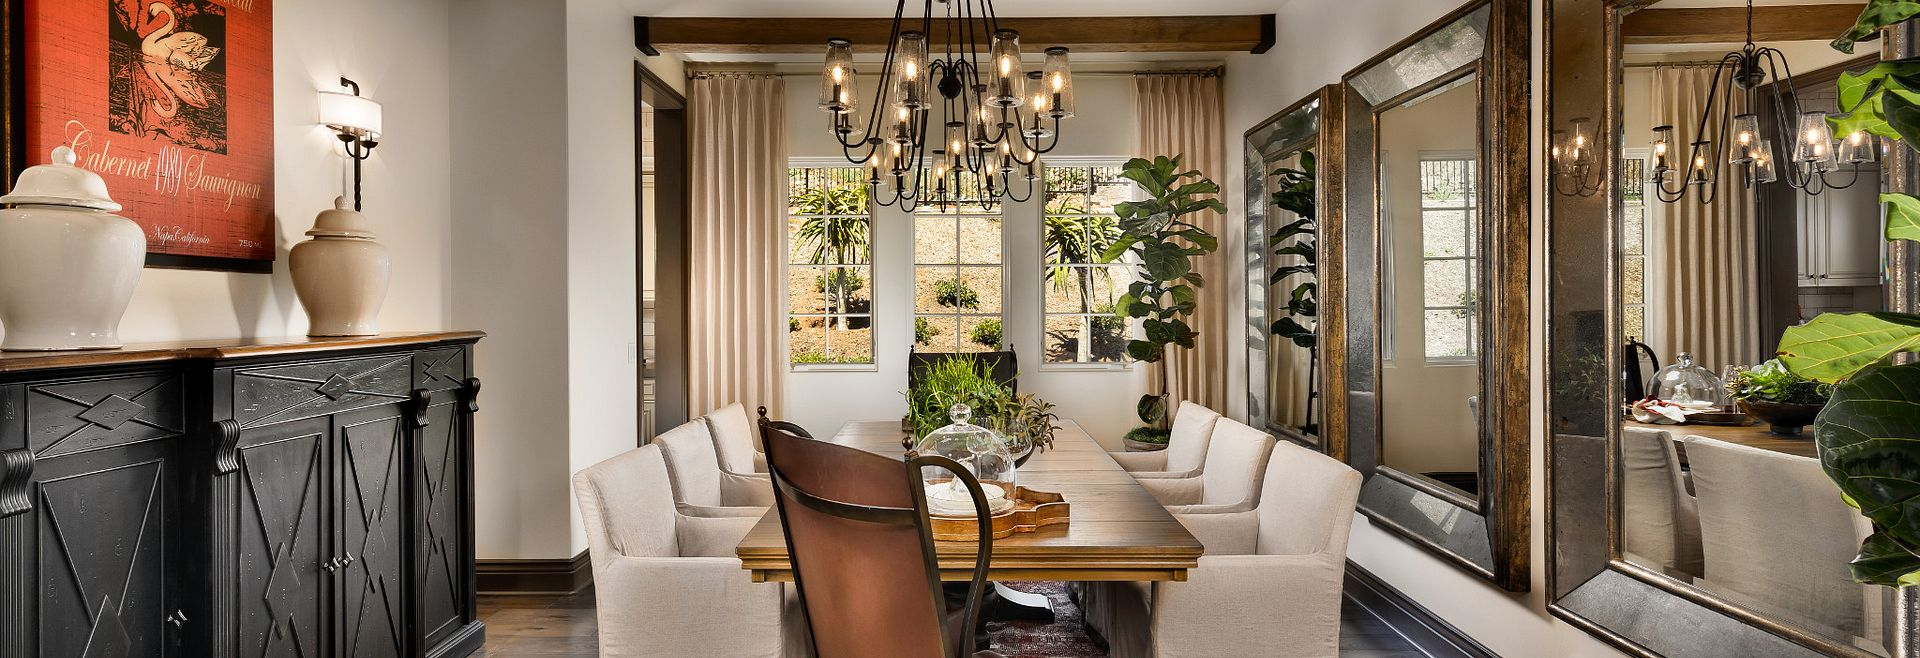 Plan 7 Dining Room with table, surrounding chairs, and chandelier